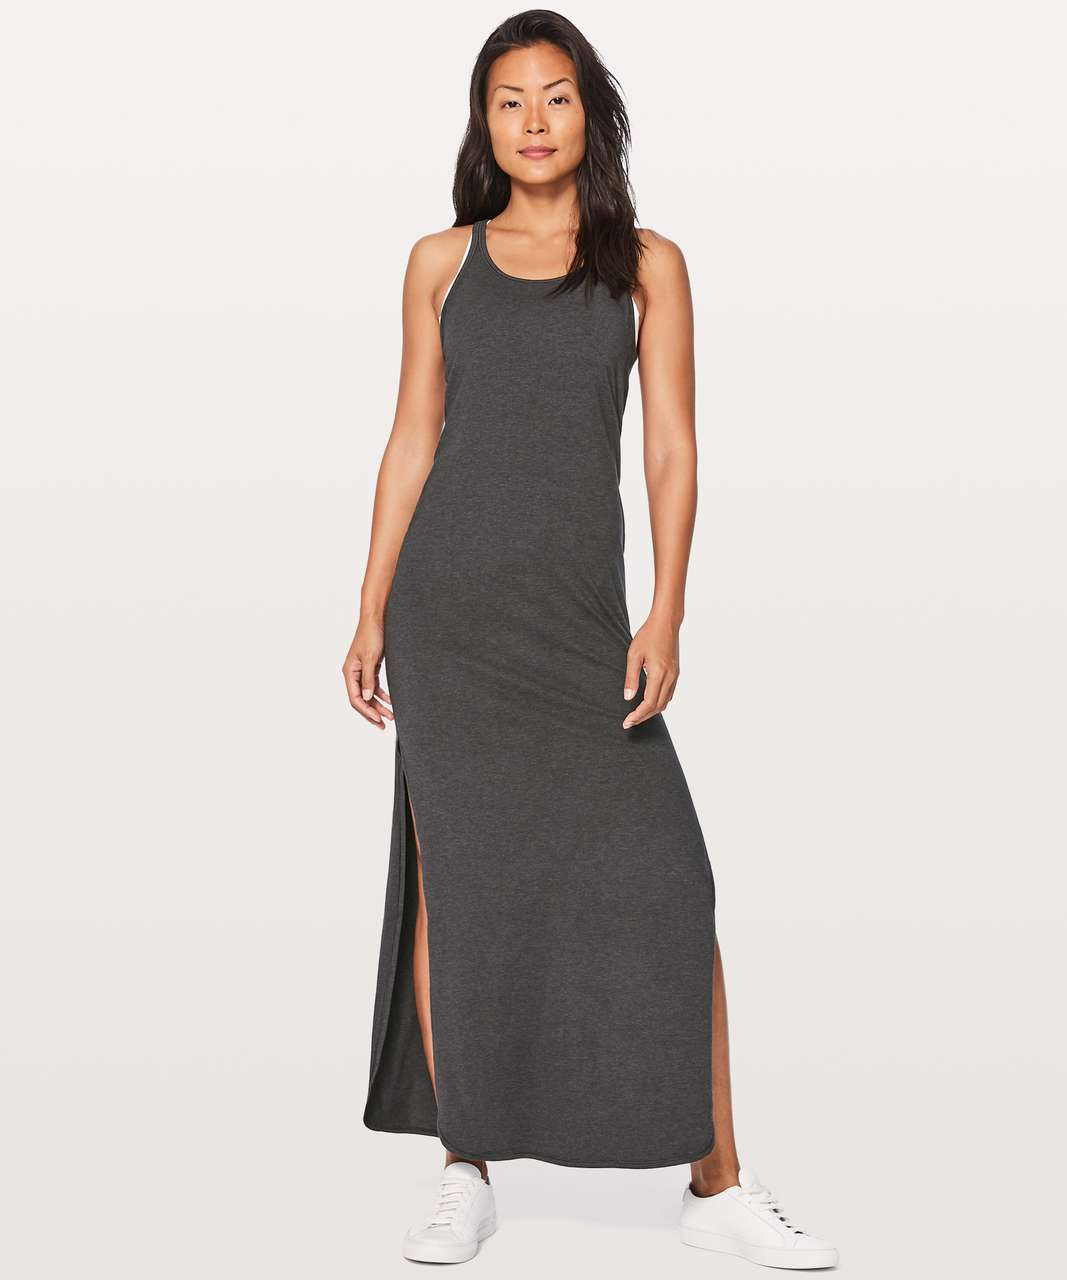 4fbb1207e7a Lululemon Refresh Maxi Dress II - Heathered Black - lulu fanatics